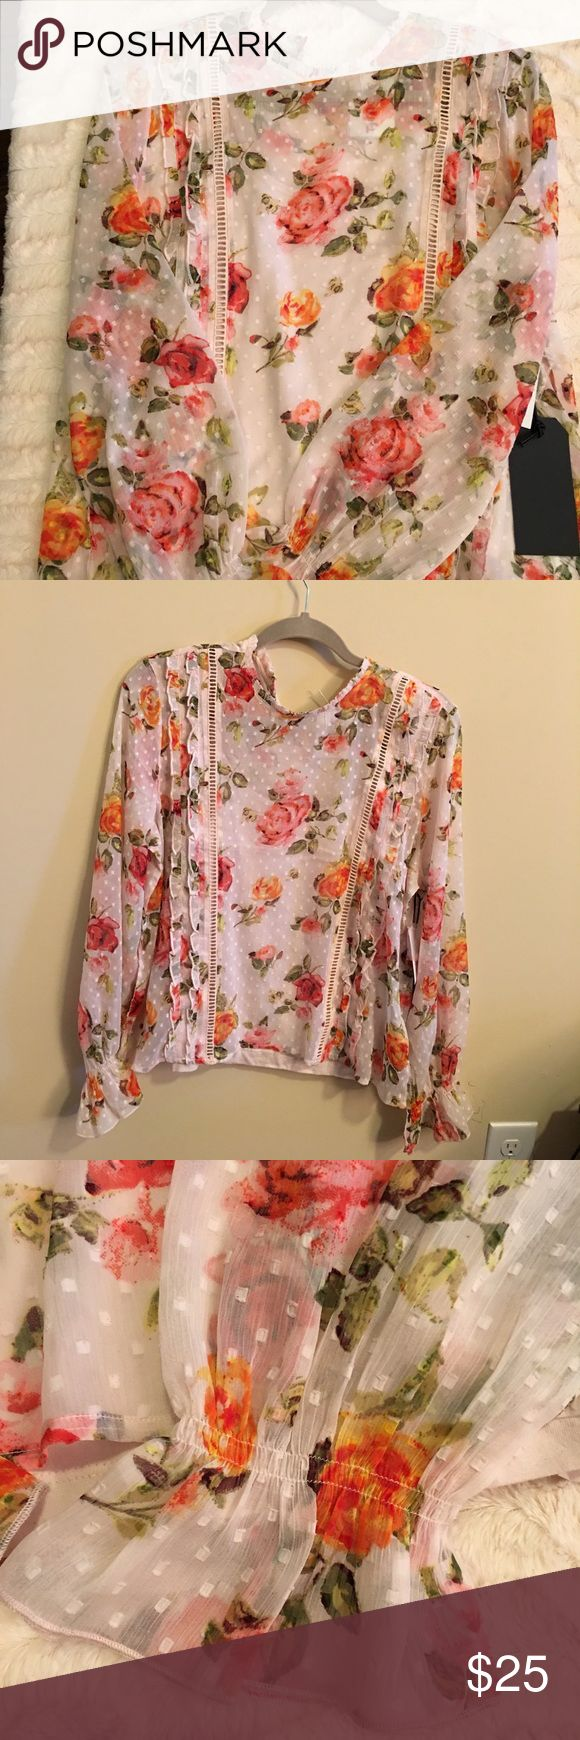 Kensie Jeans Floral Long Sleeve Top Sz L Beautiful, feminine lightweight floral long sleeve top with attached camisole. On trend and perfect for spring.  Sz L Kensie Tops Blouses